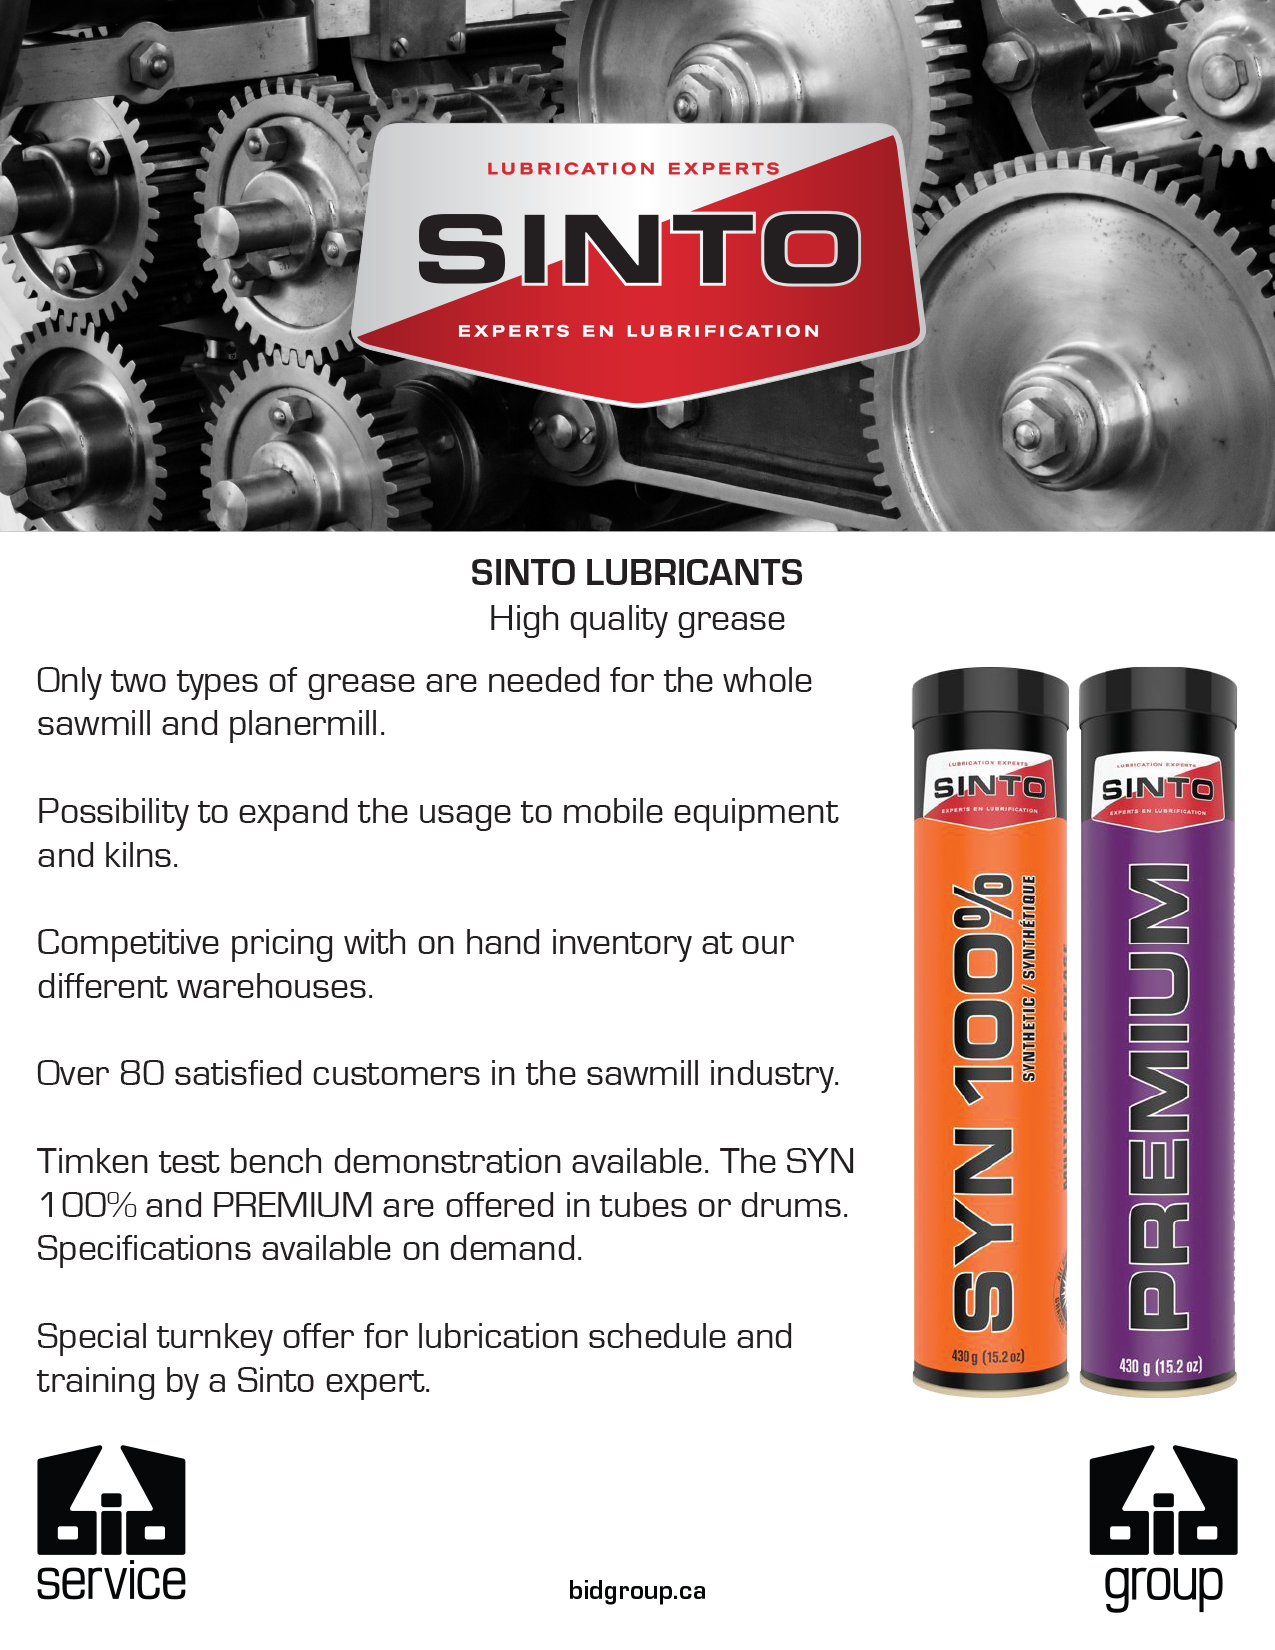 sinto lubricants High quality grease